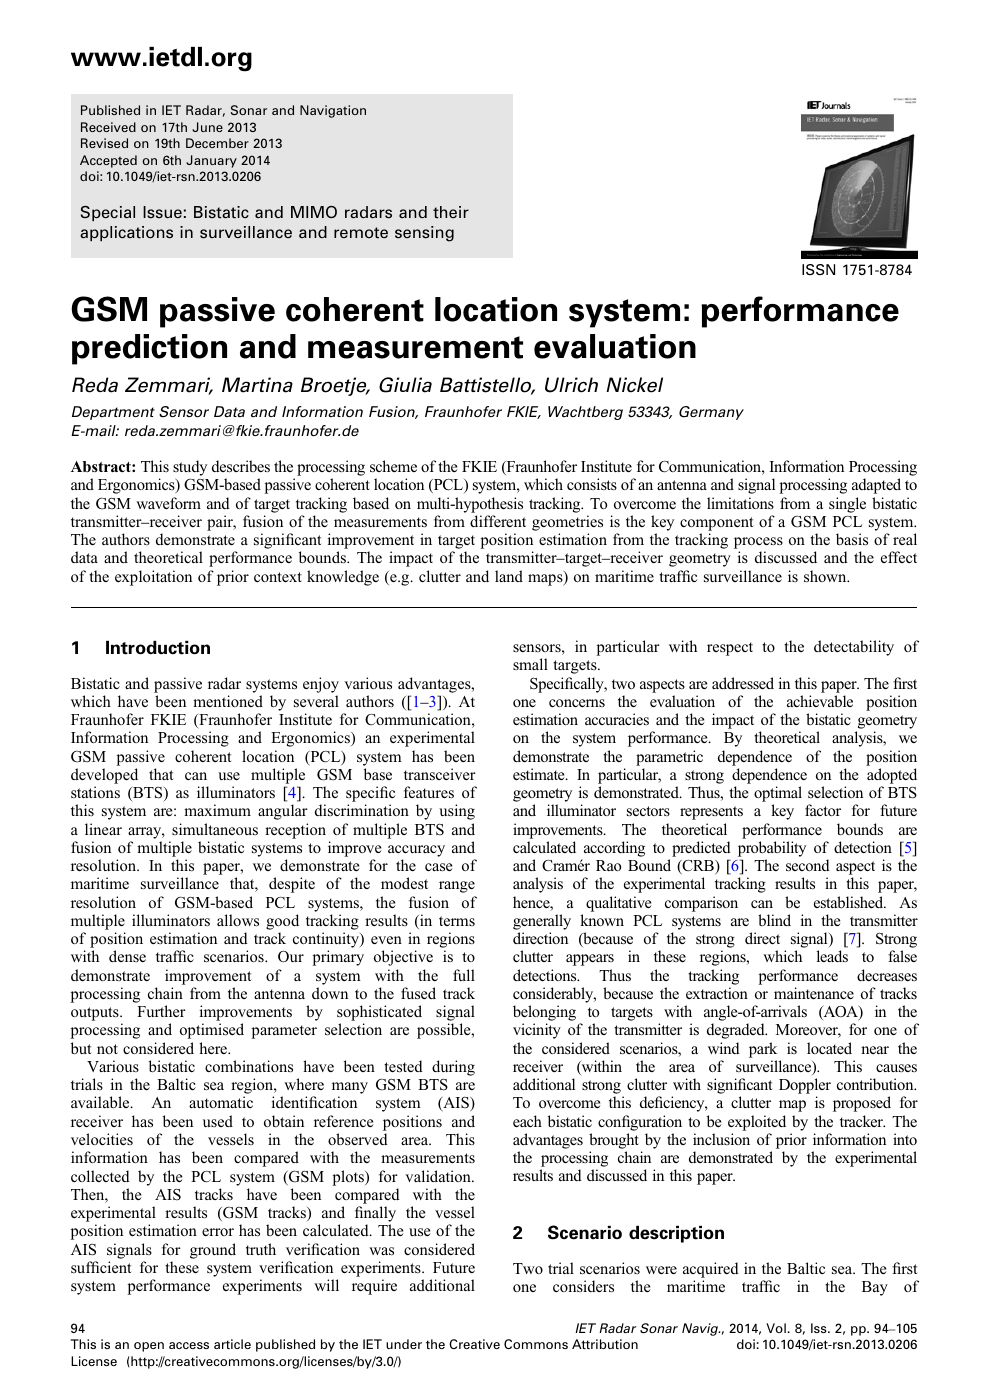 GSM passive coherent location system: performance prediction and